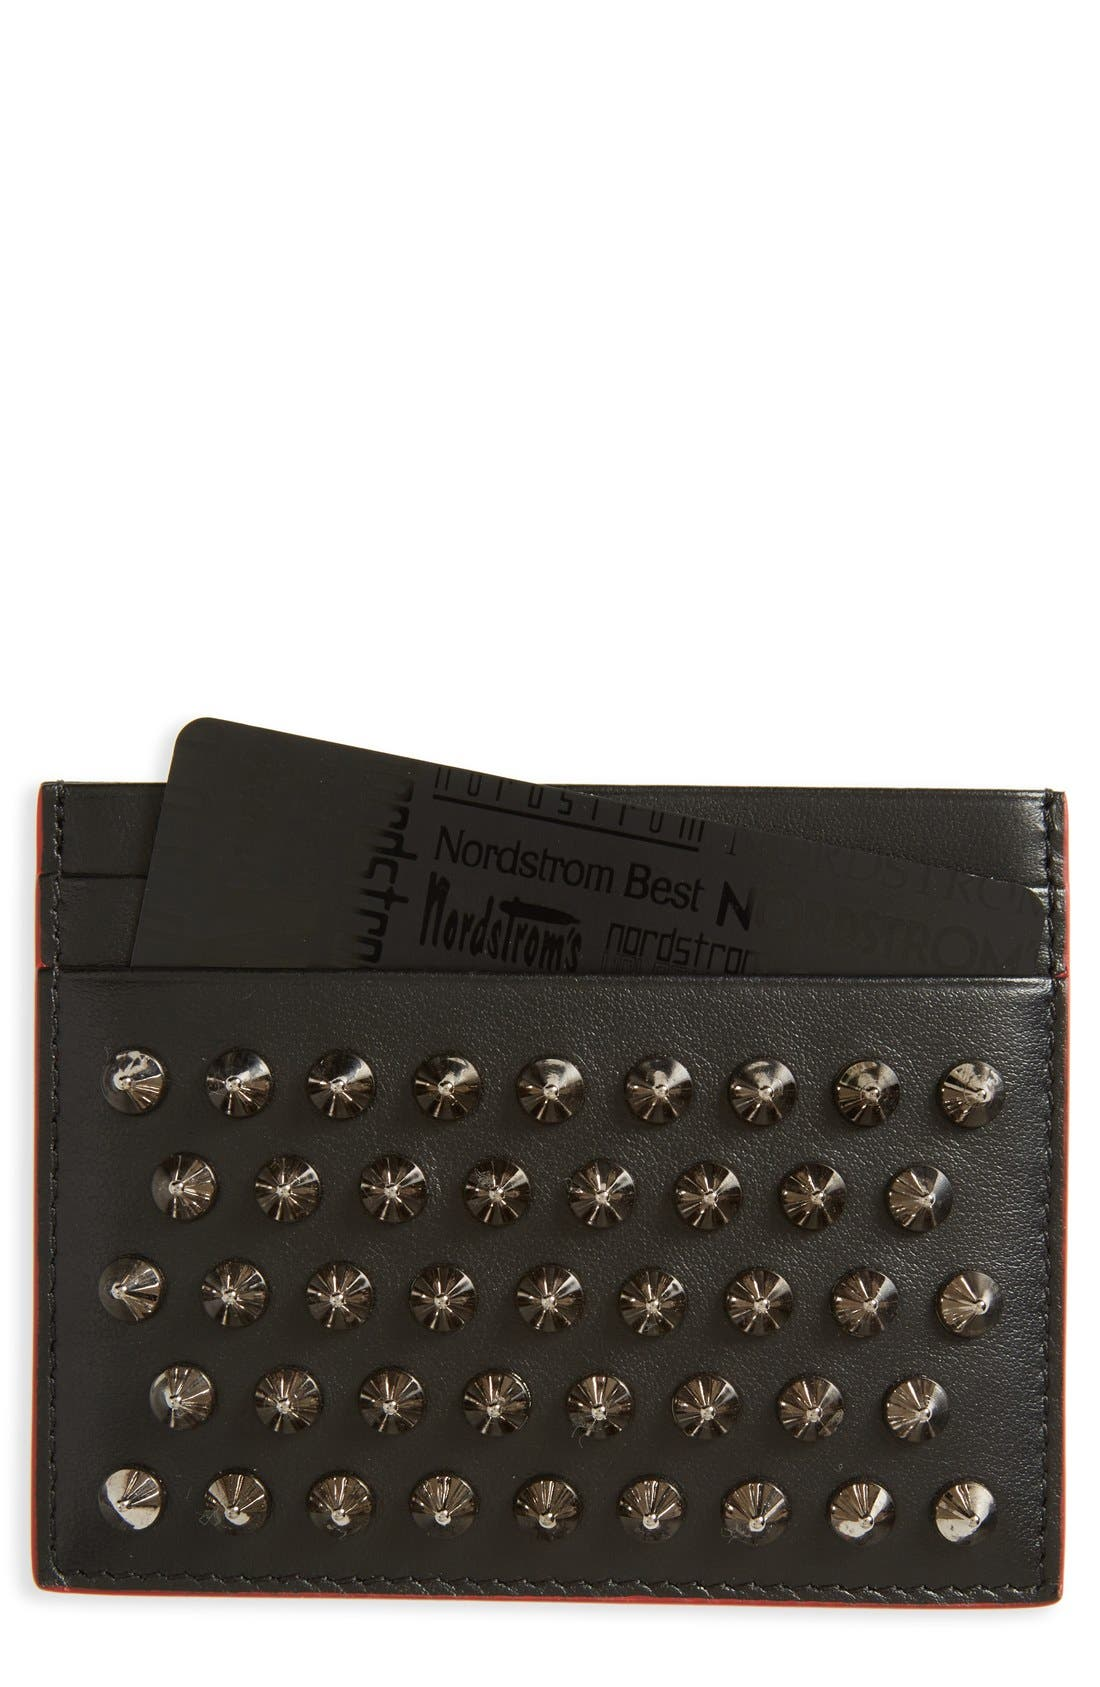 Alternate Image 1 Selected - Christian Louboutin 'Kios' Spiked Calfskin Leather Card Case